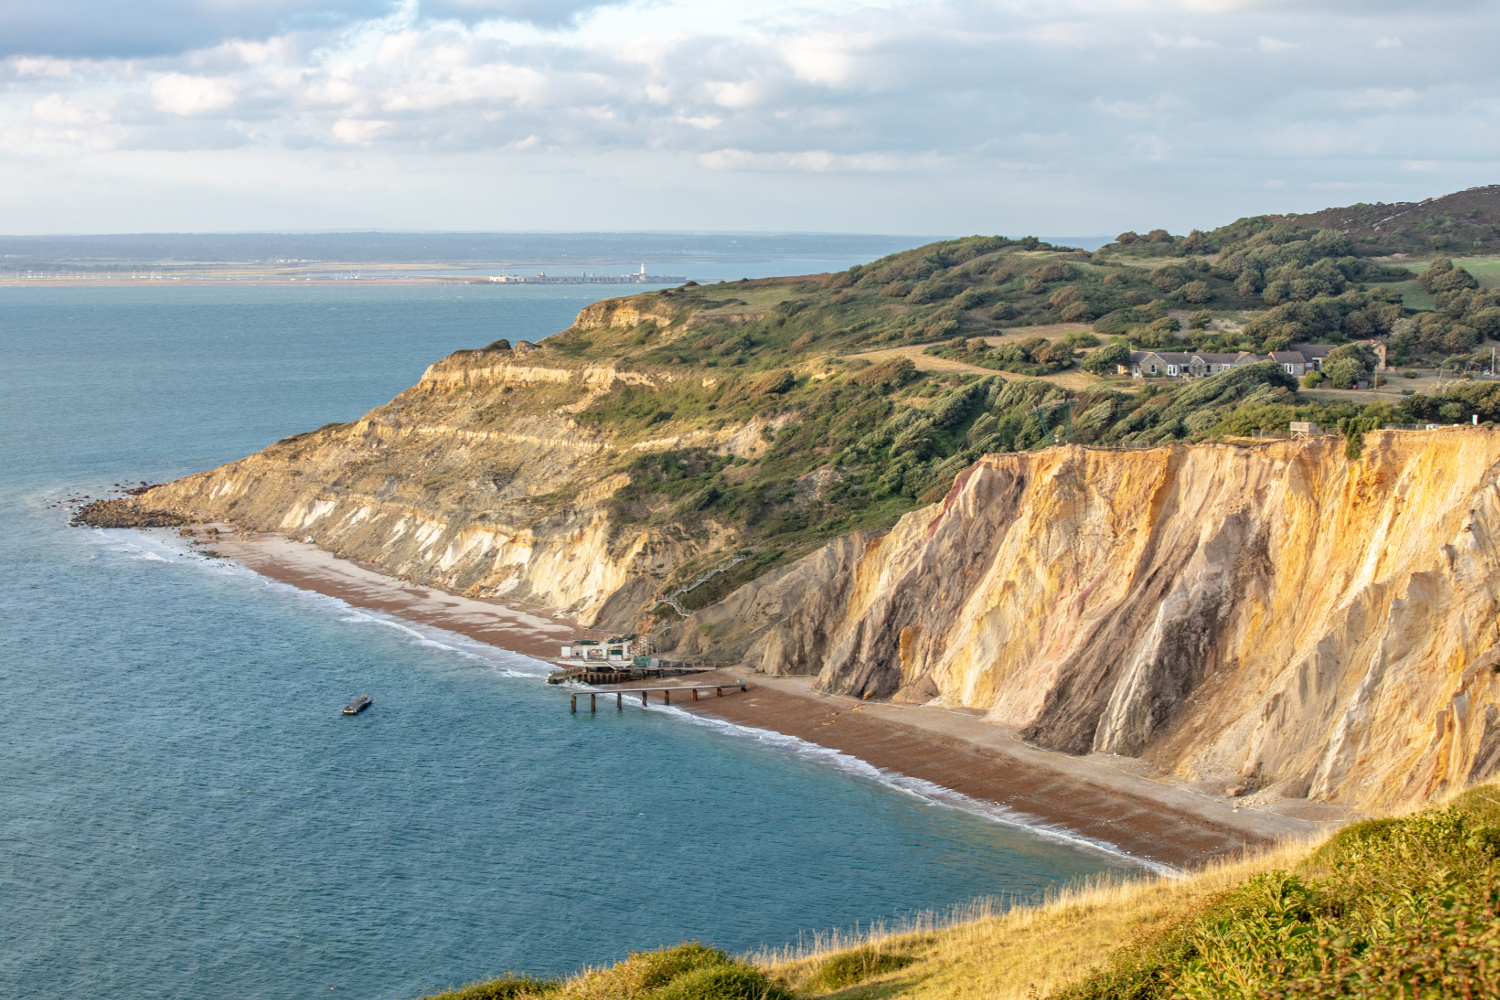 Isle_of_Wight_beaches_Alum-Bay